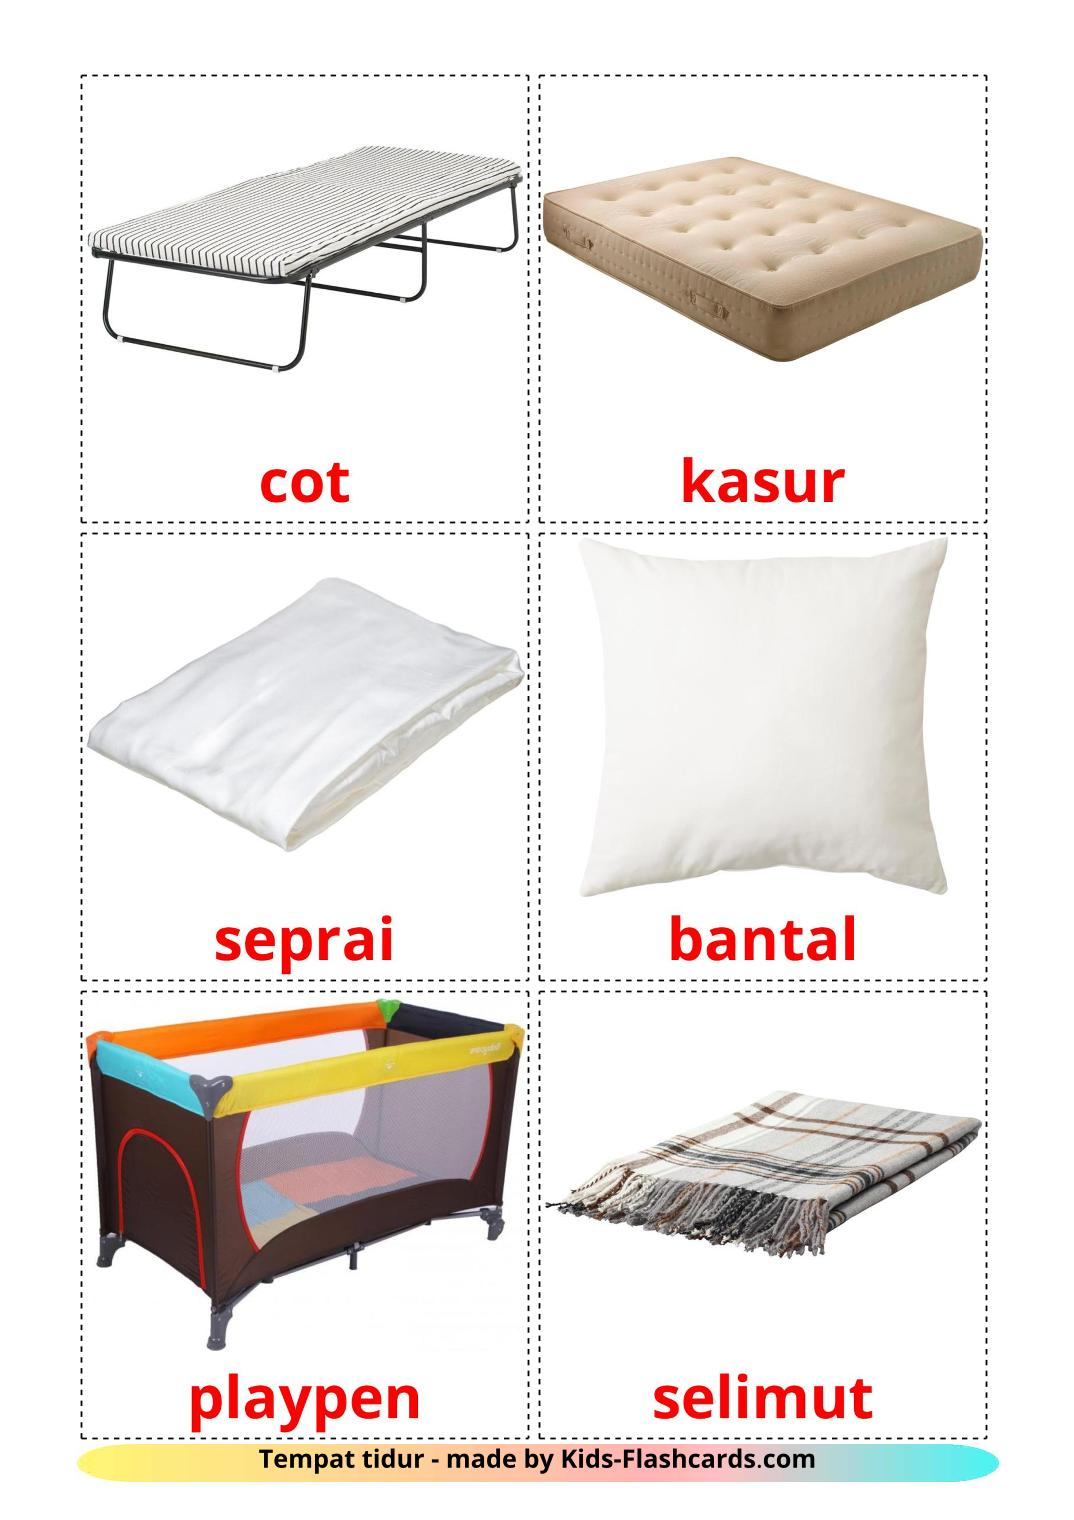 Bed - 15 Free Printable indonesian Flashcards